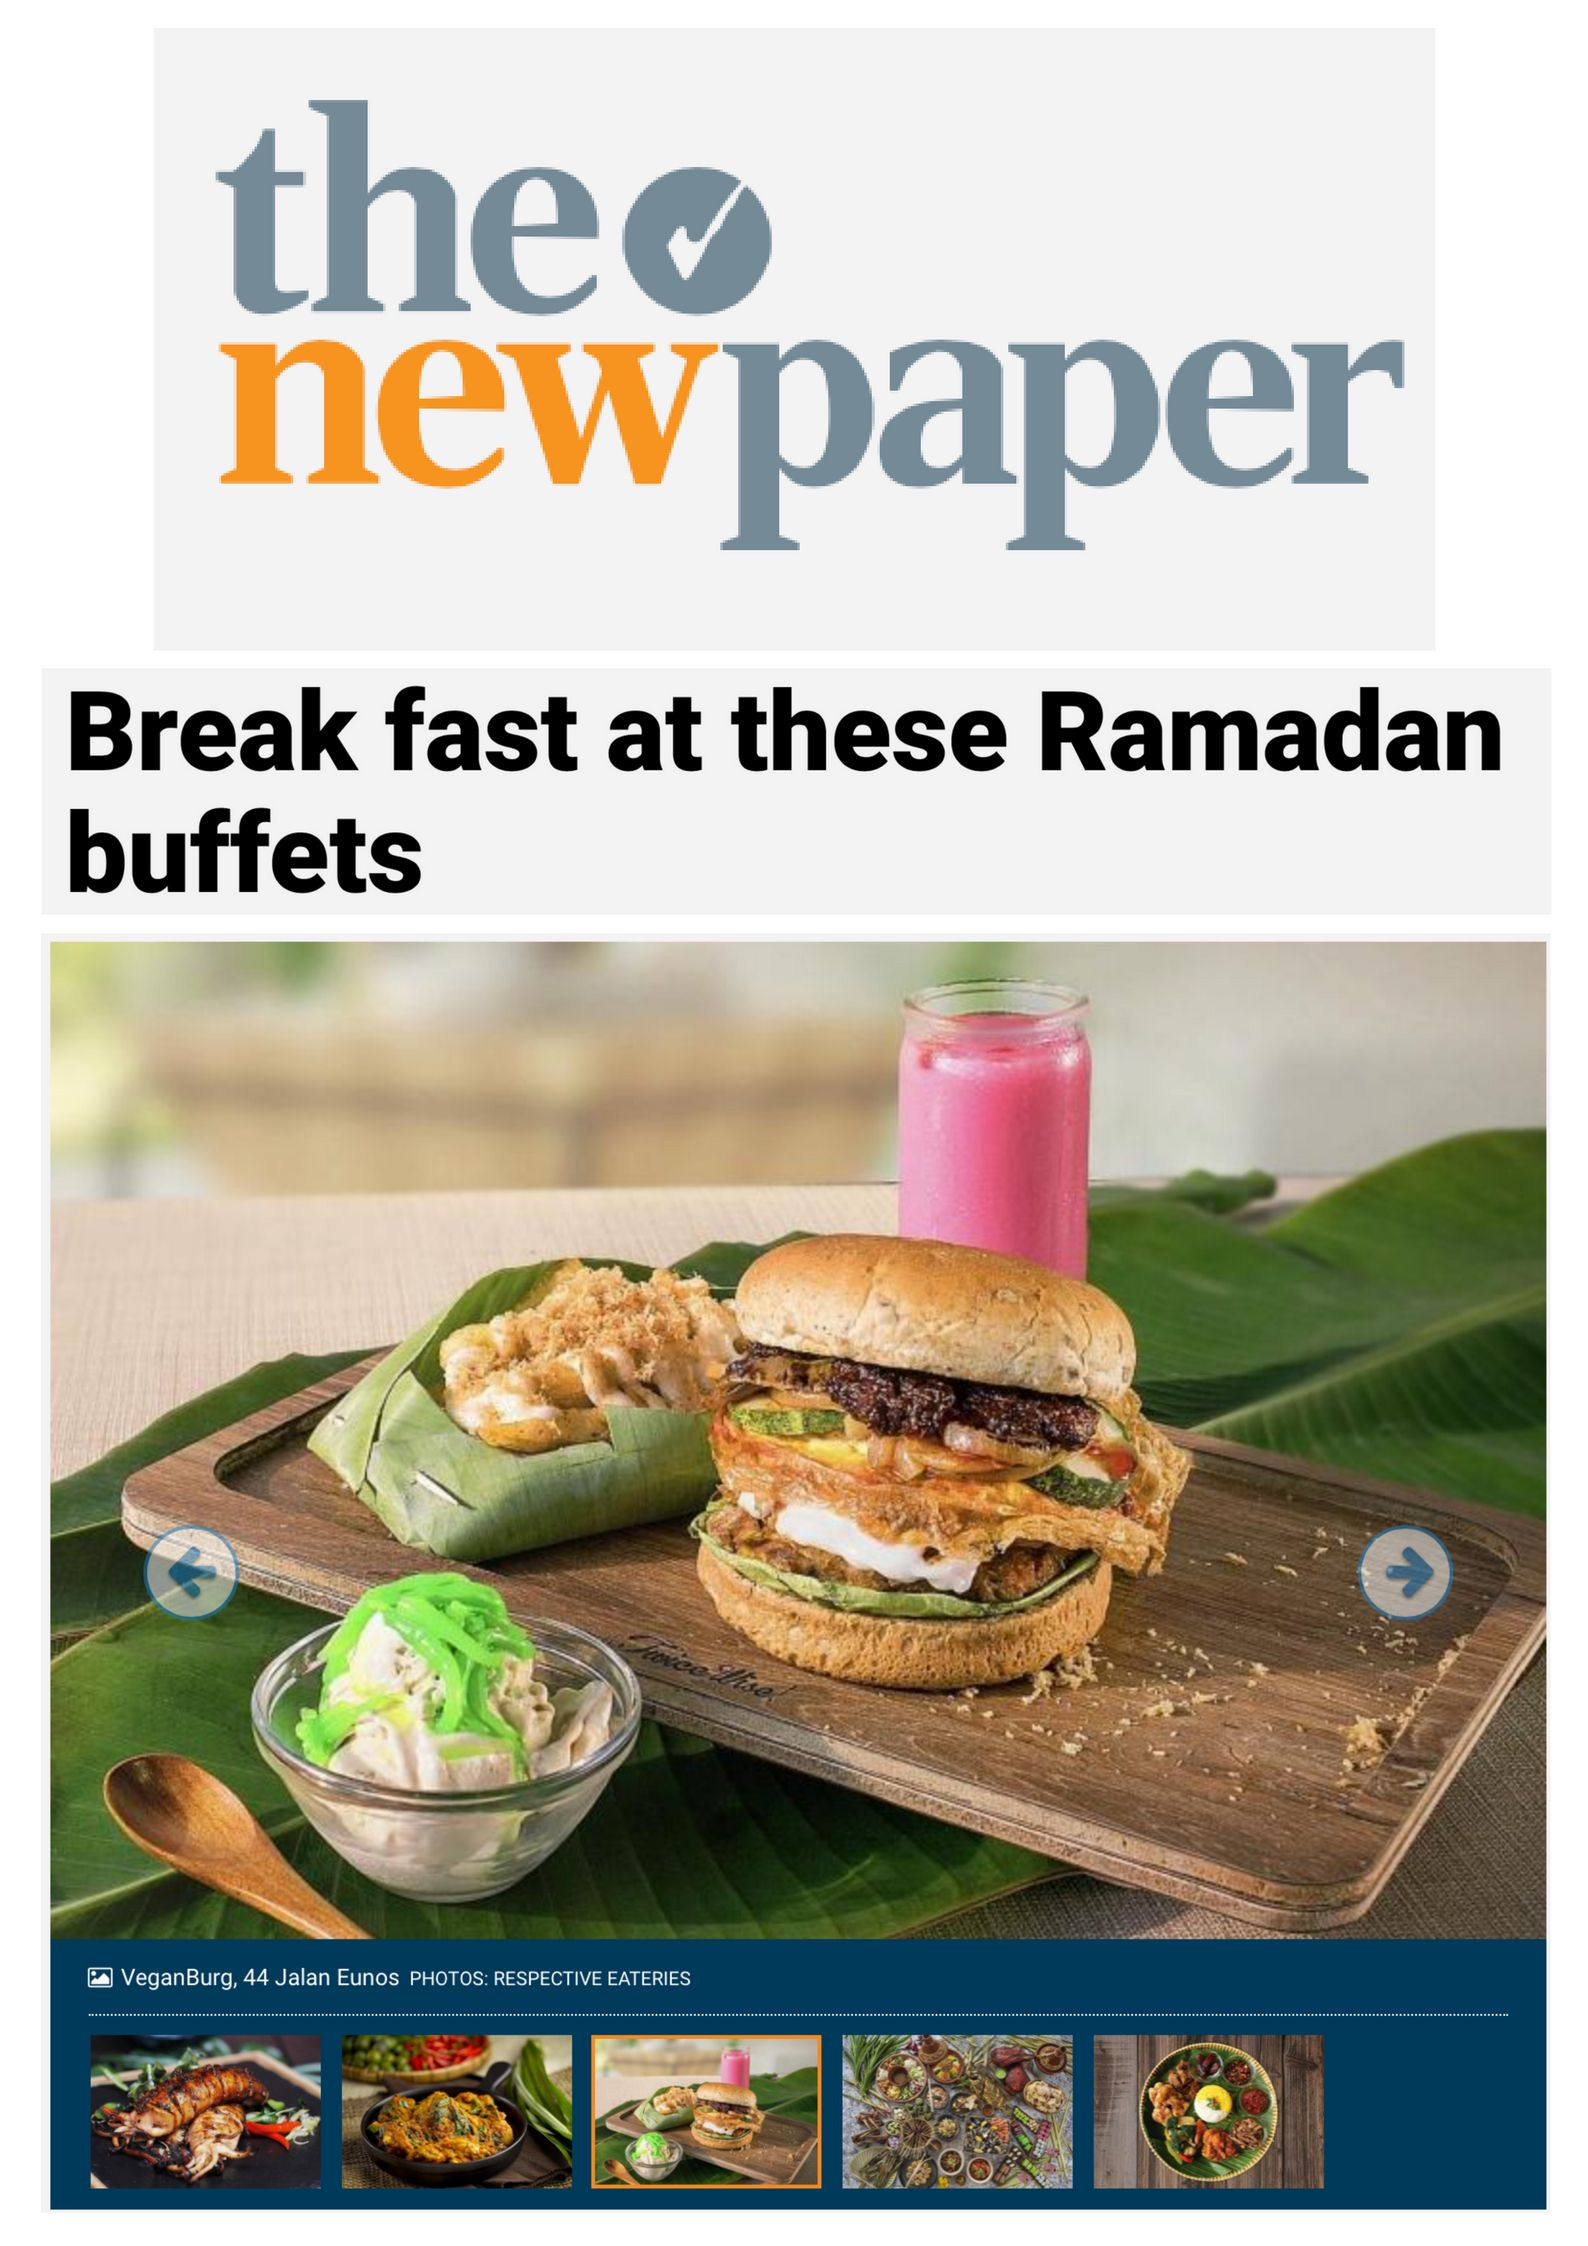 The New Paper _ Break fast at these Ramadan buffets.jpg